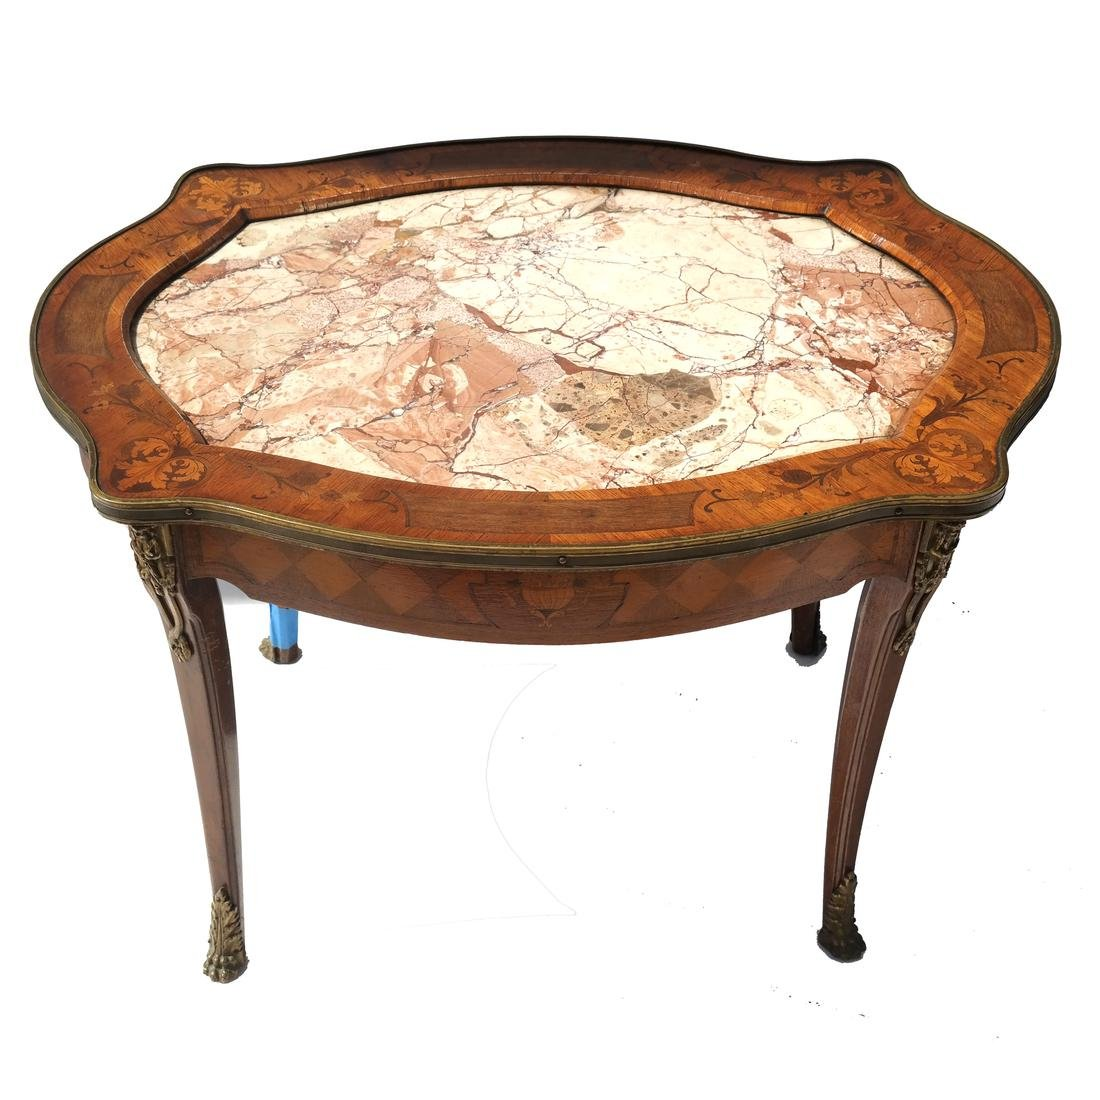 19th C. Inlaid French Coffee/Cocktail Table